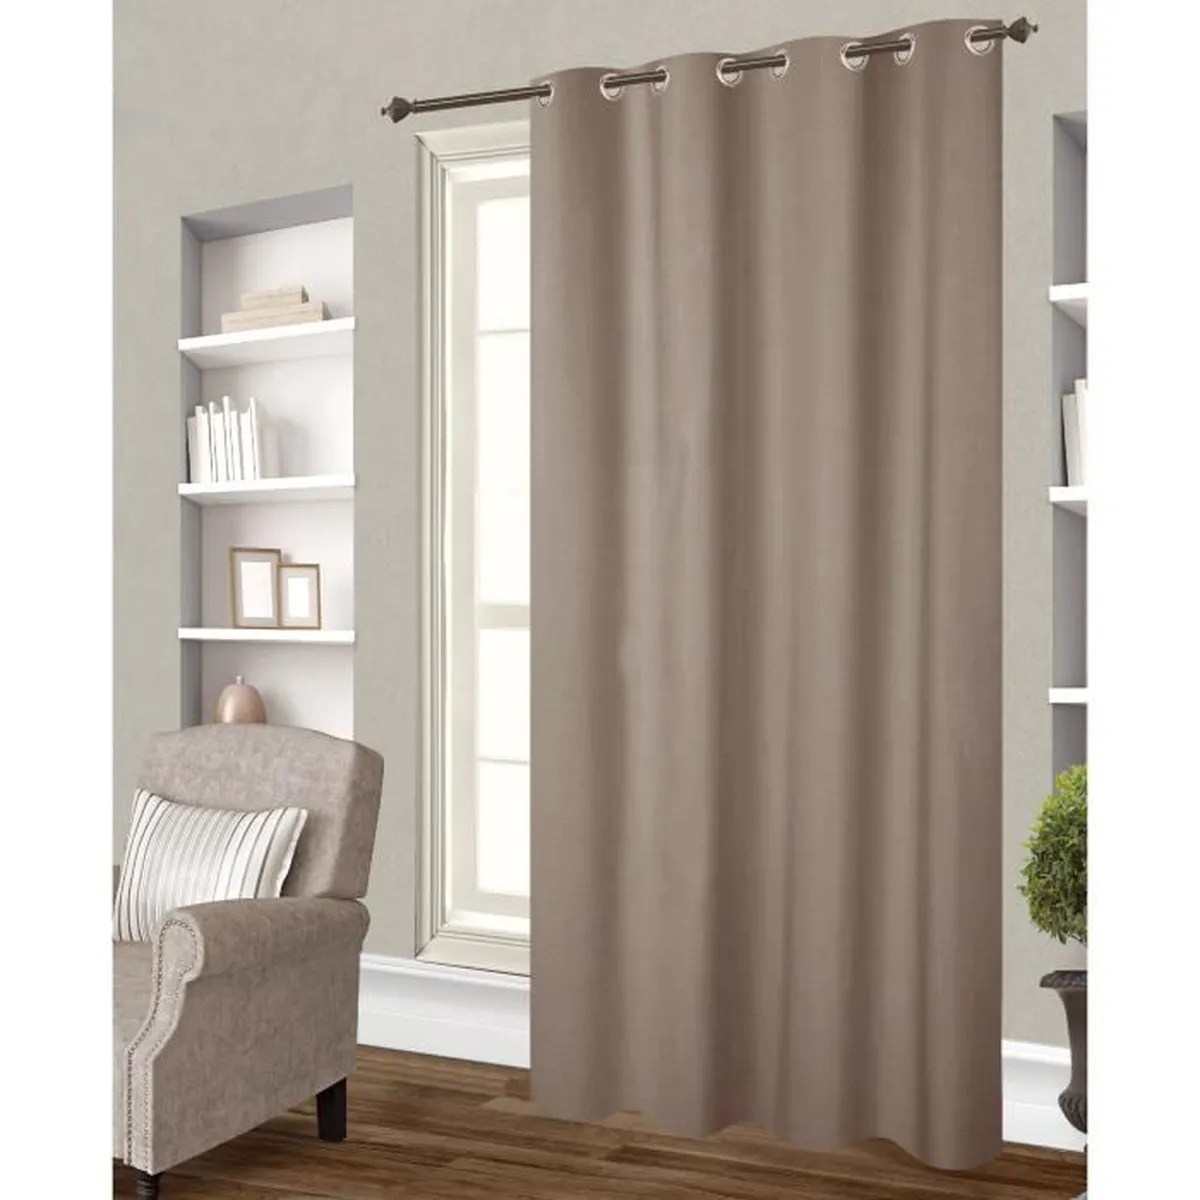 Rideau Taupe Opaque Rideaux Taupe Occultant Achat Vente Pas Cher